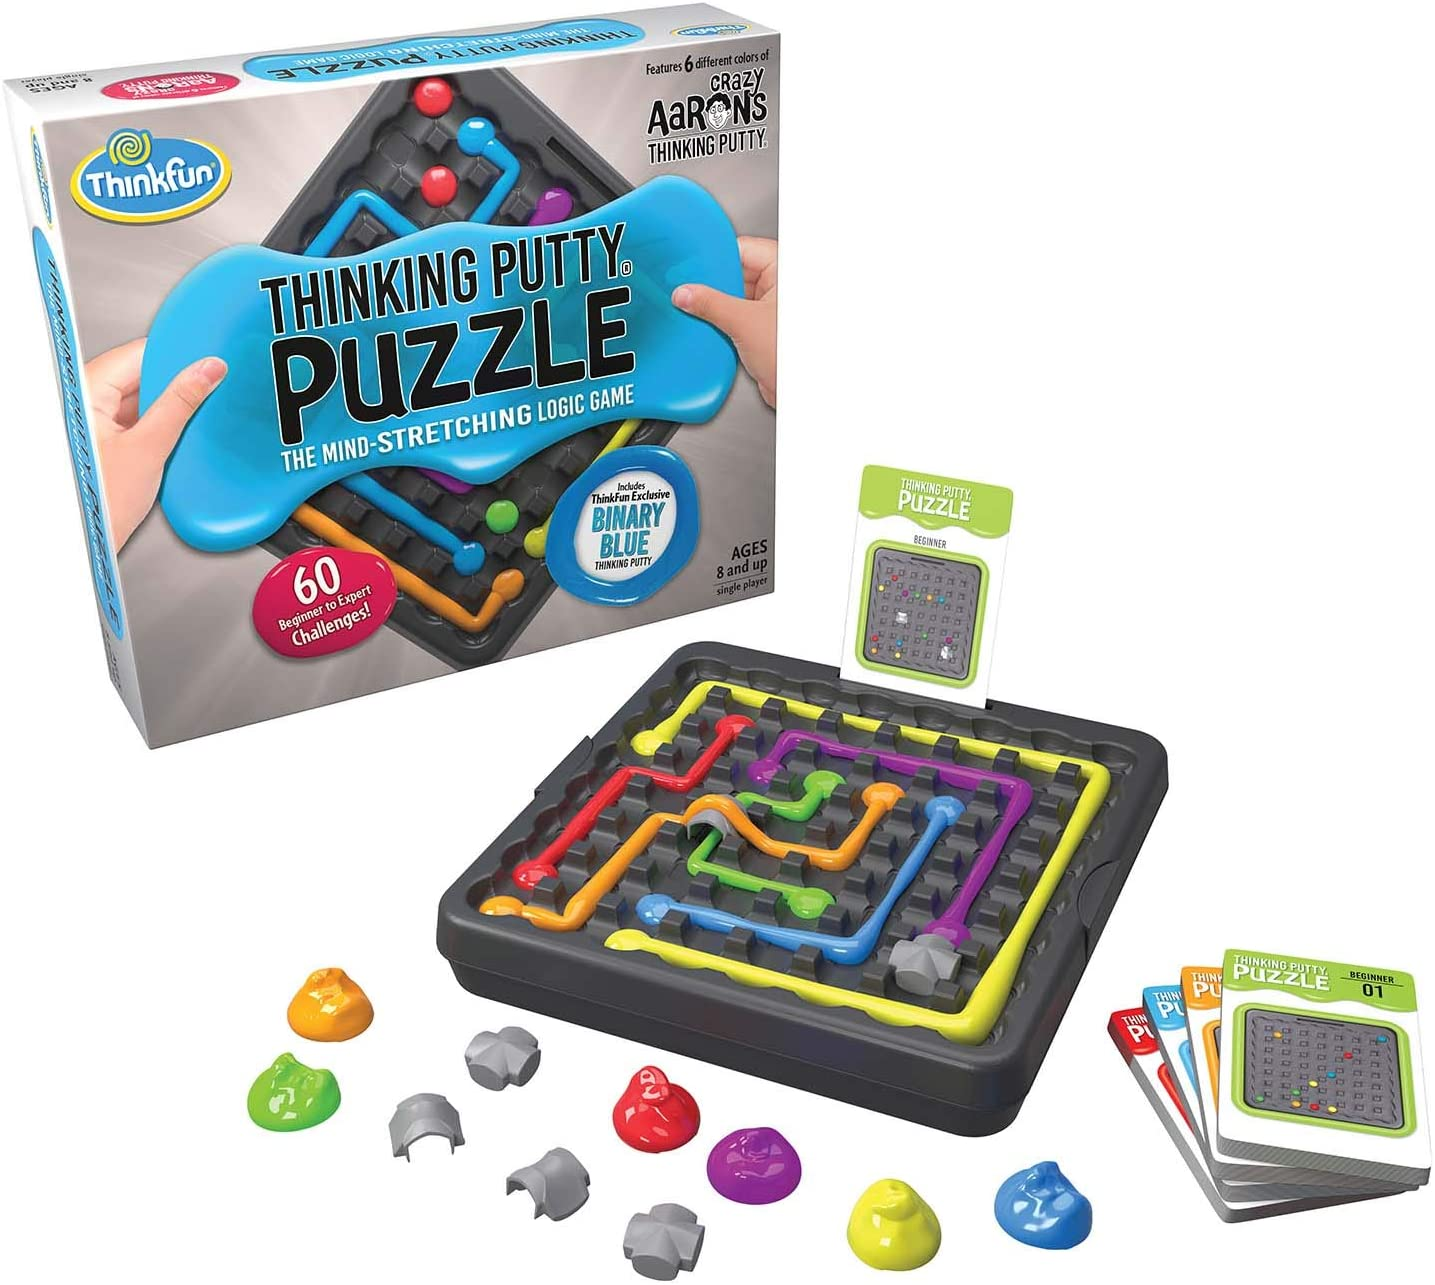 This is an image of a thinking putty puzzle logic game for boys 10+.